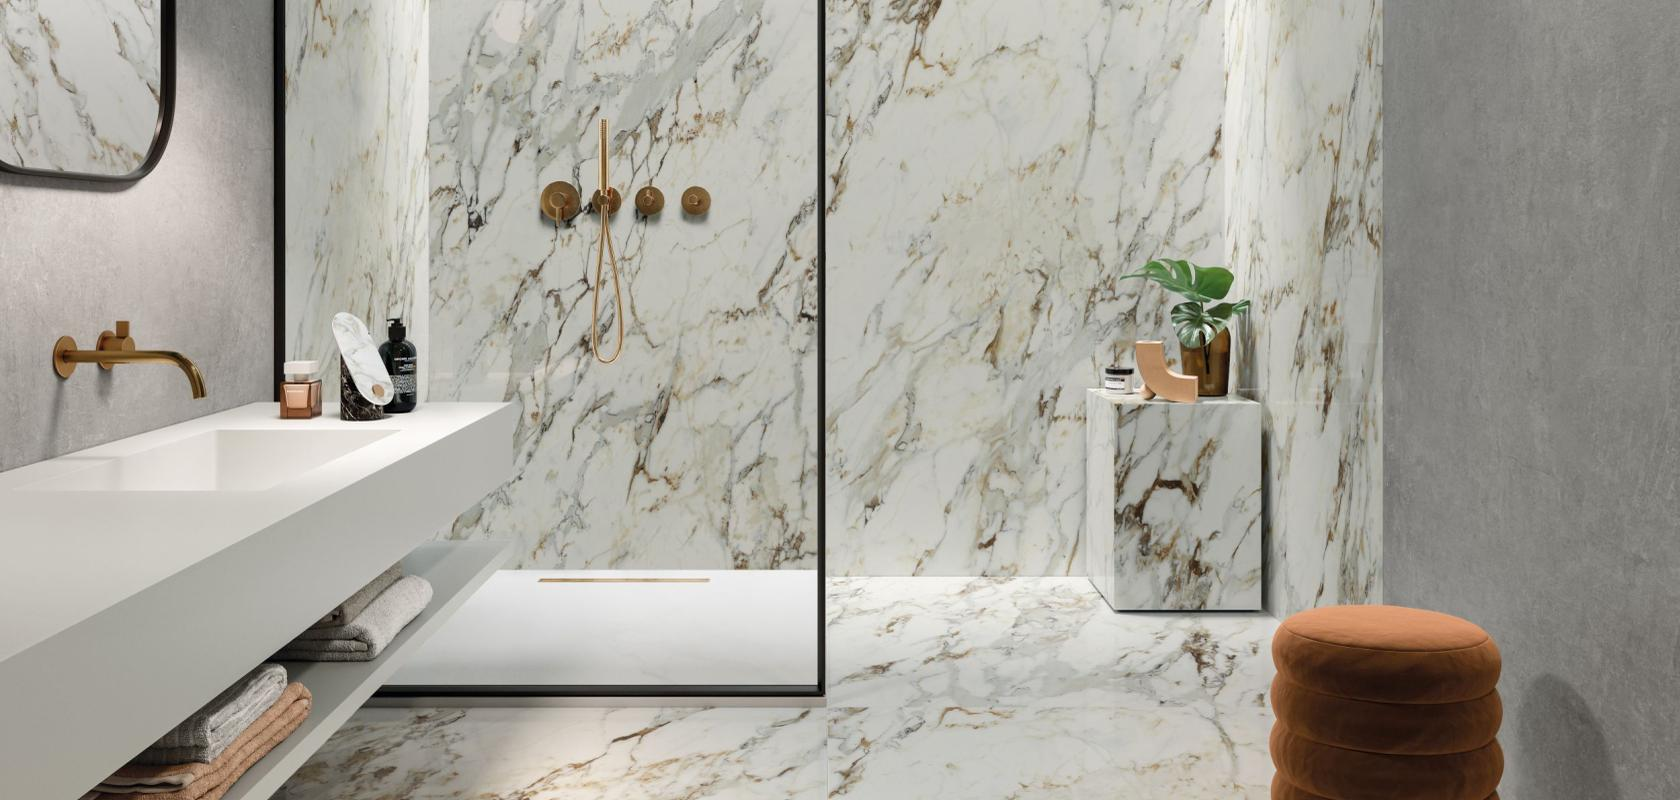 Breccia Marble Slab on Wall Coverings